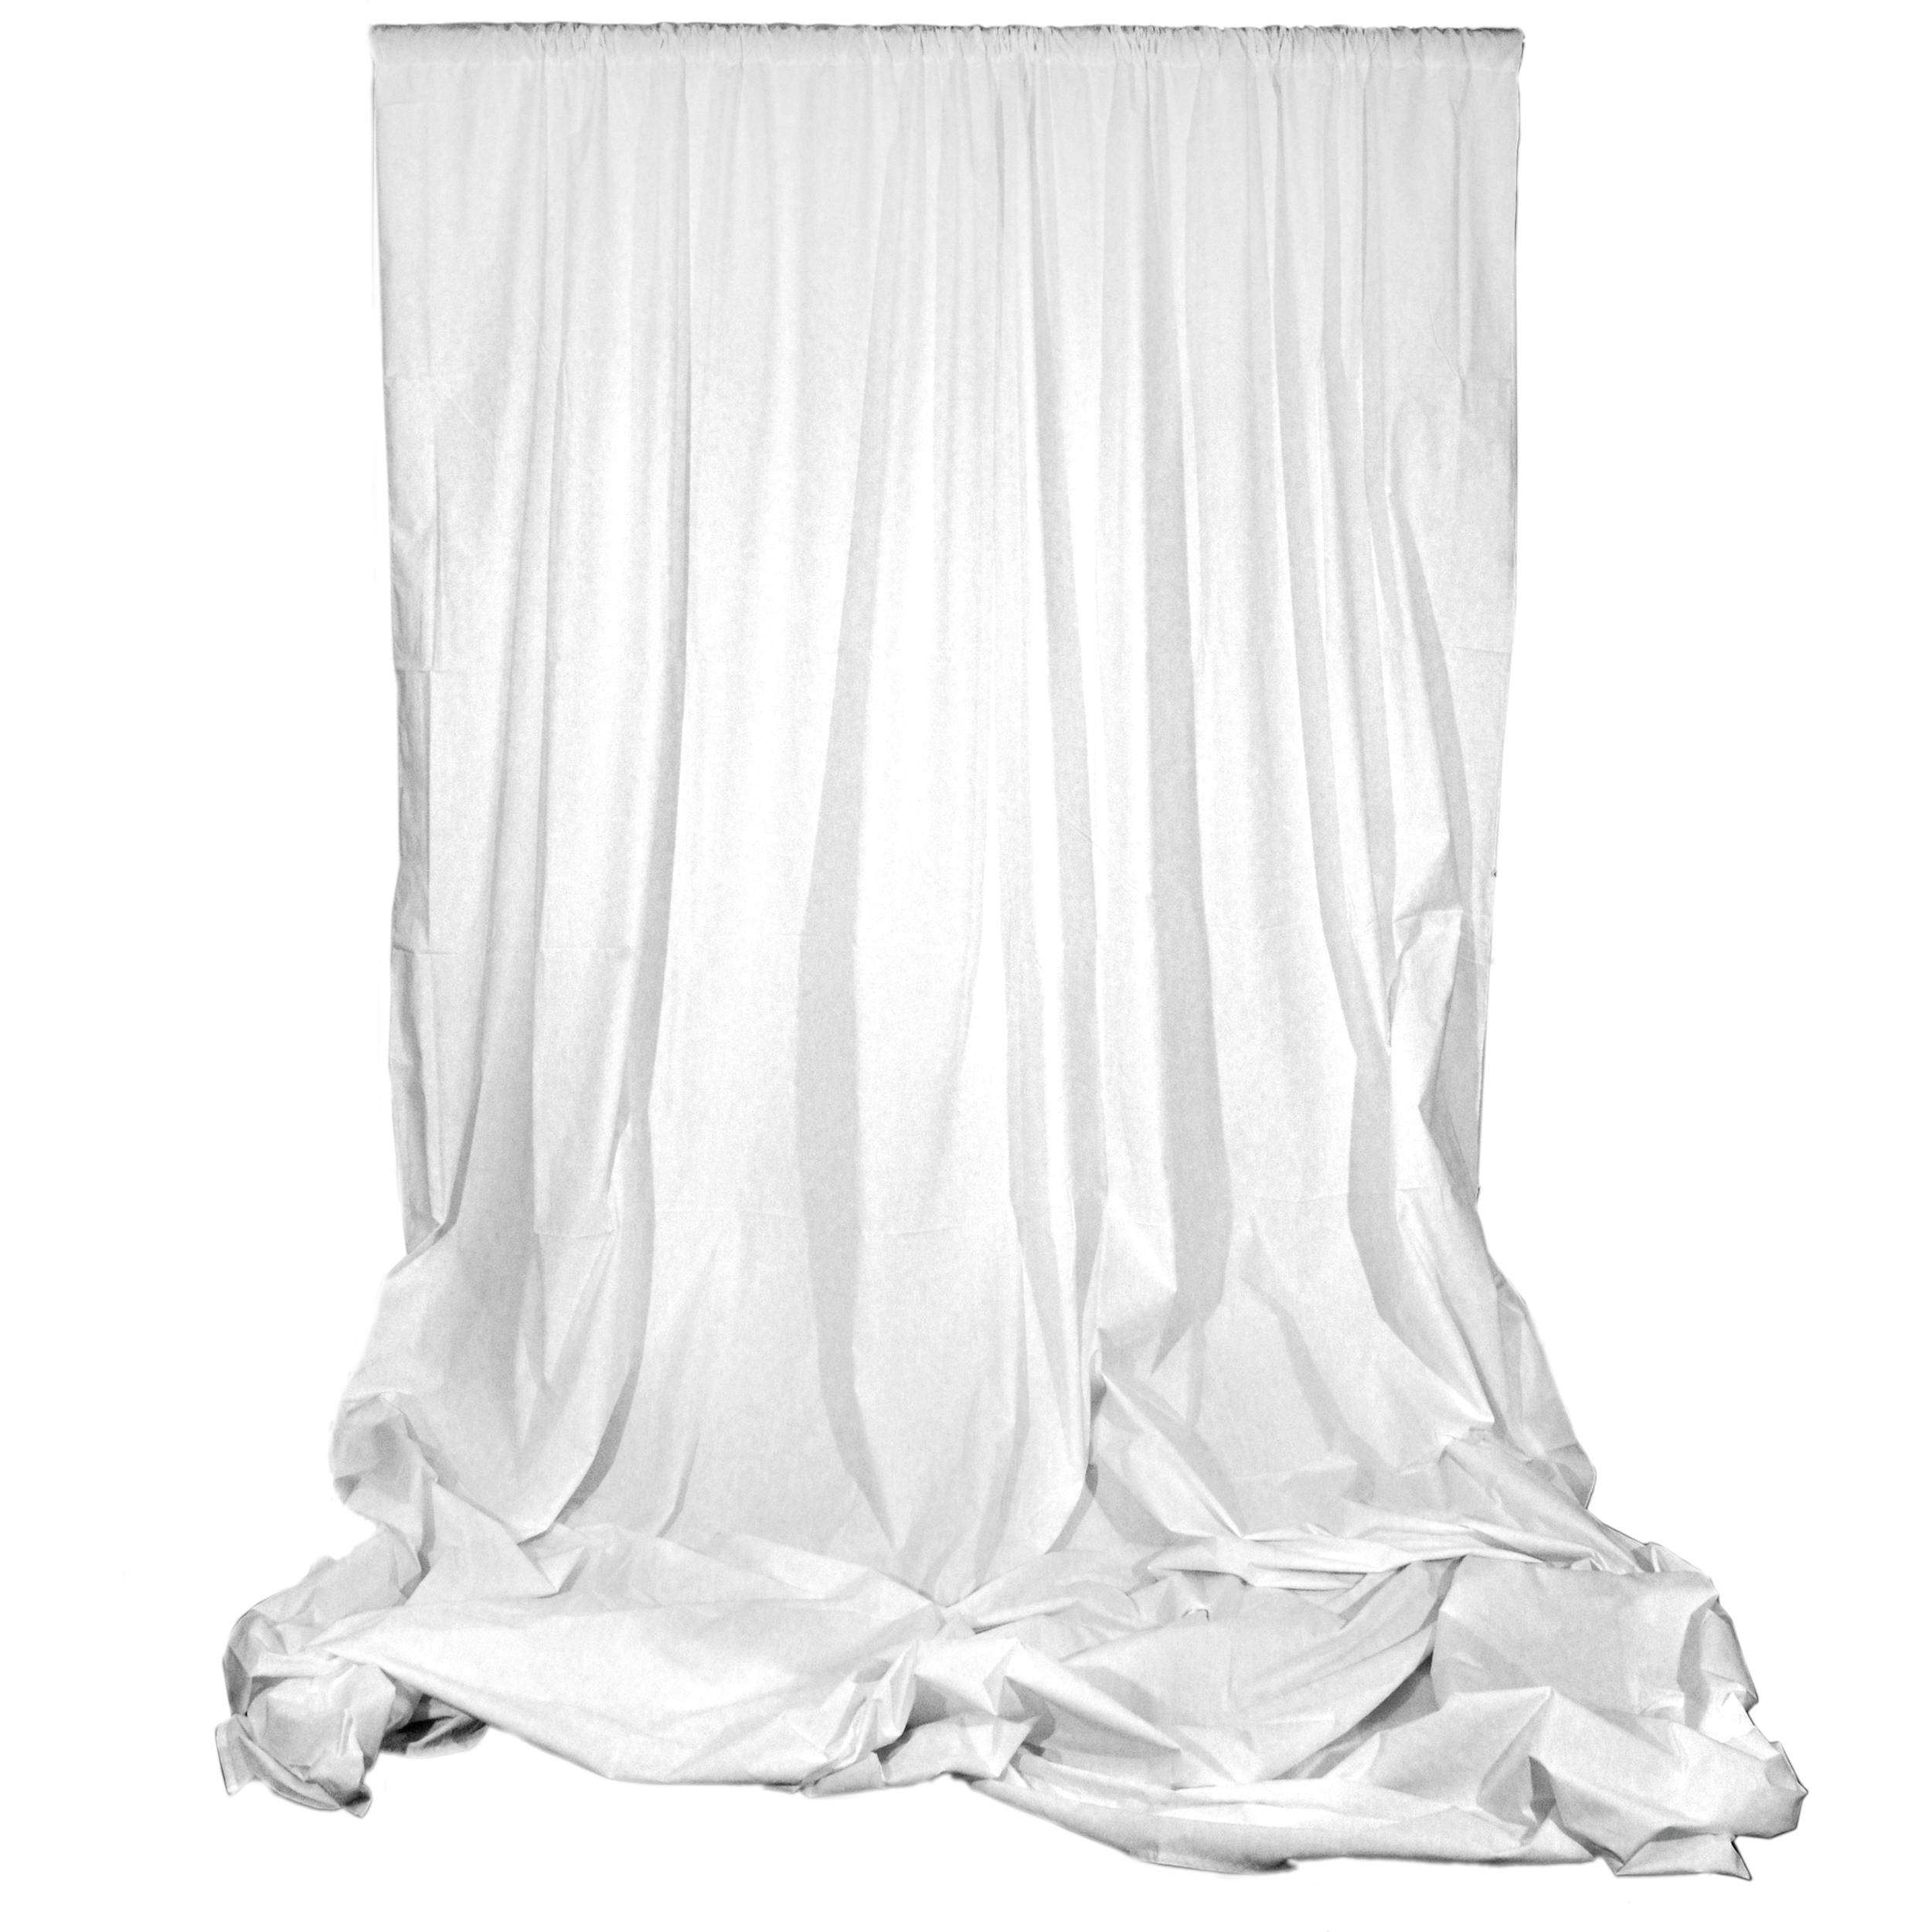 White bed sheet background - Actual Color May Vary Between Productions